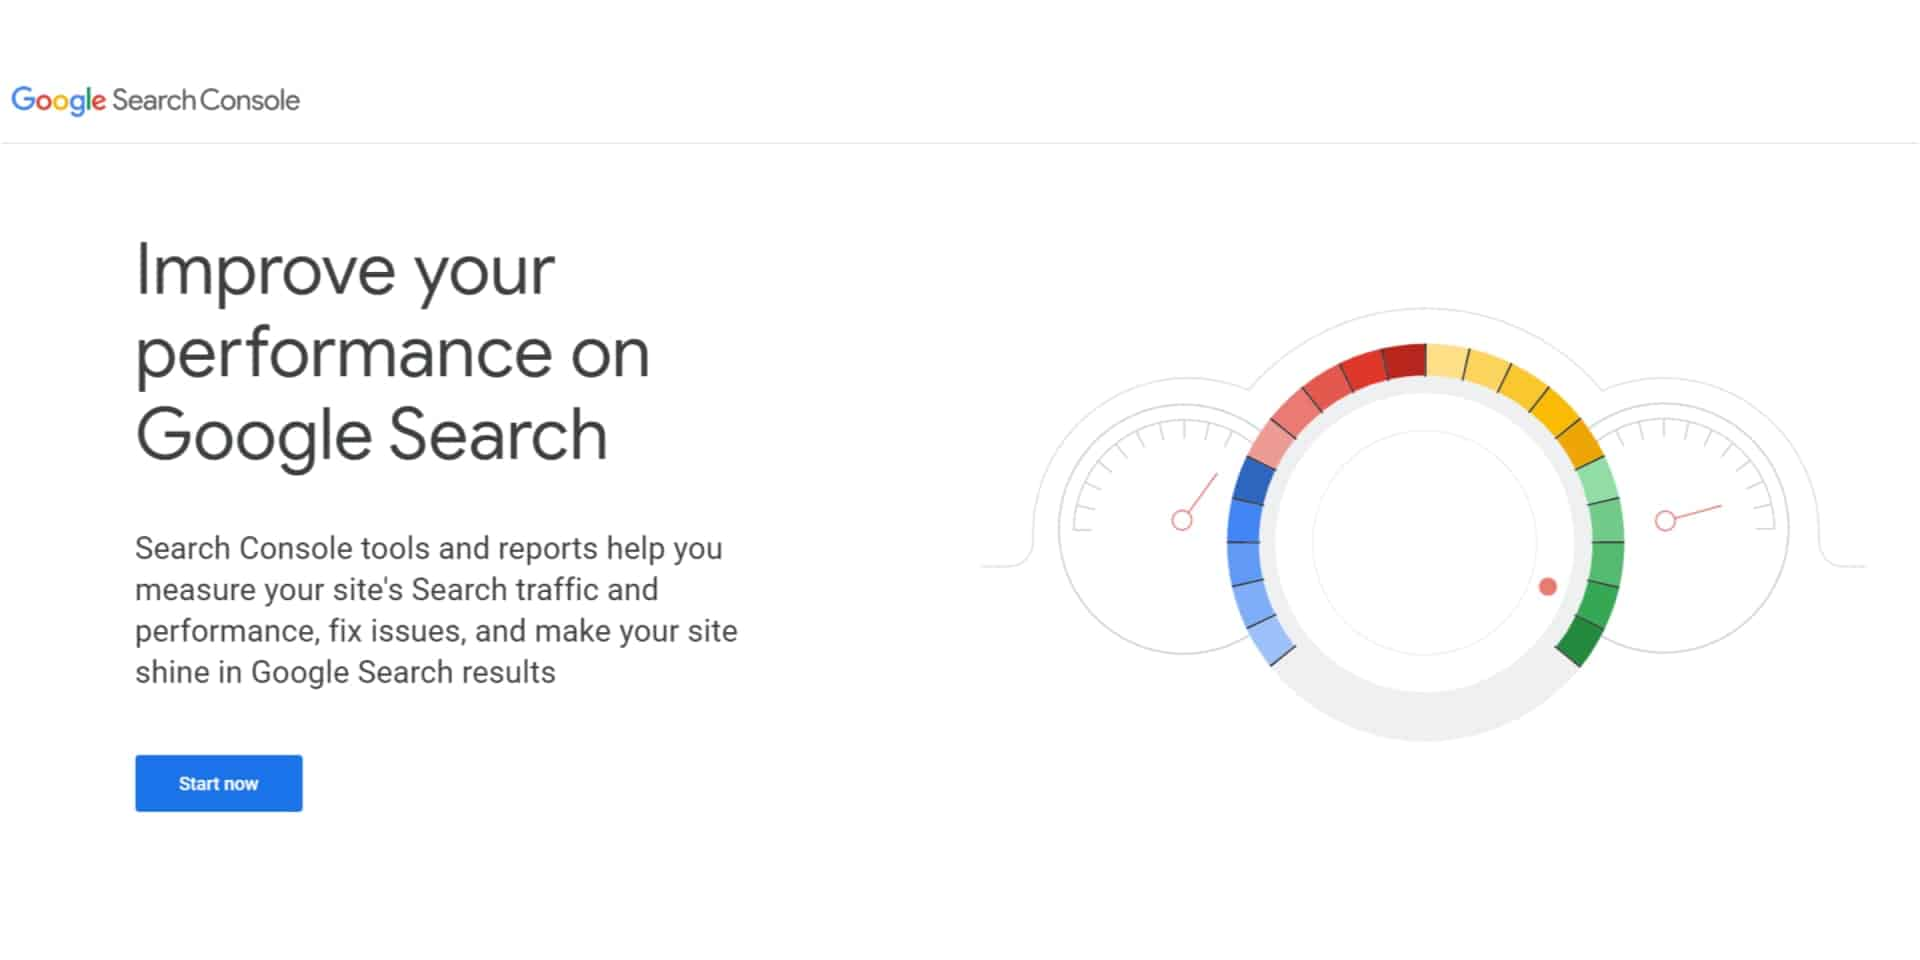 Create A Google Search Console Account